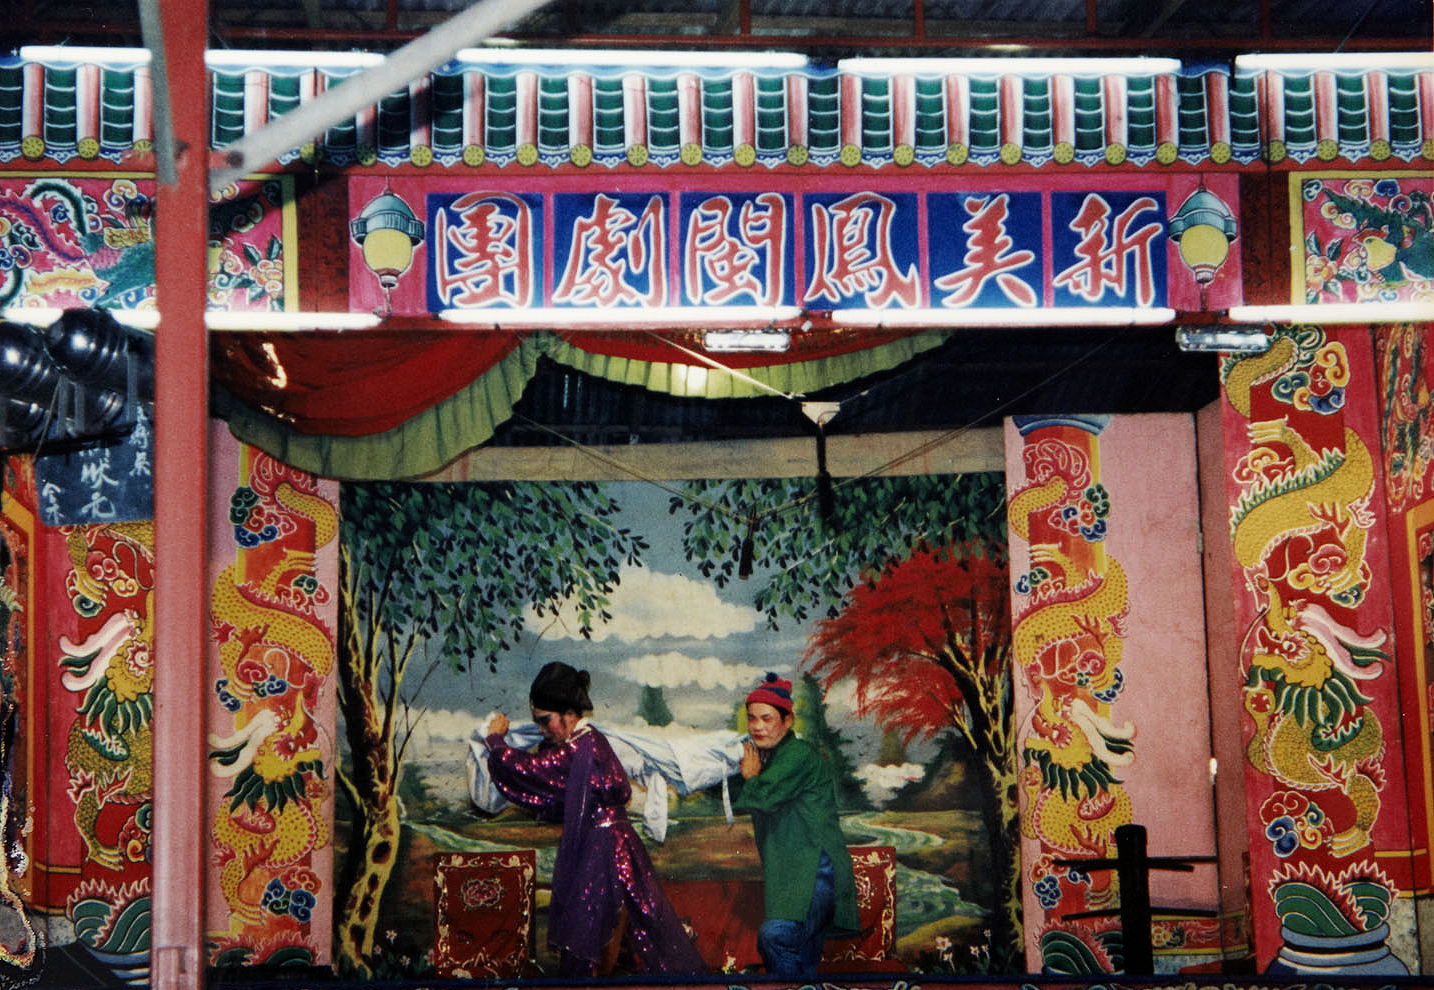 Chinese Opera performances are held in the settlement during the seventh lunar month as a form of entertainment for spirits and human alike. (photo courtesy of Fuh Huey Kong)